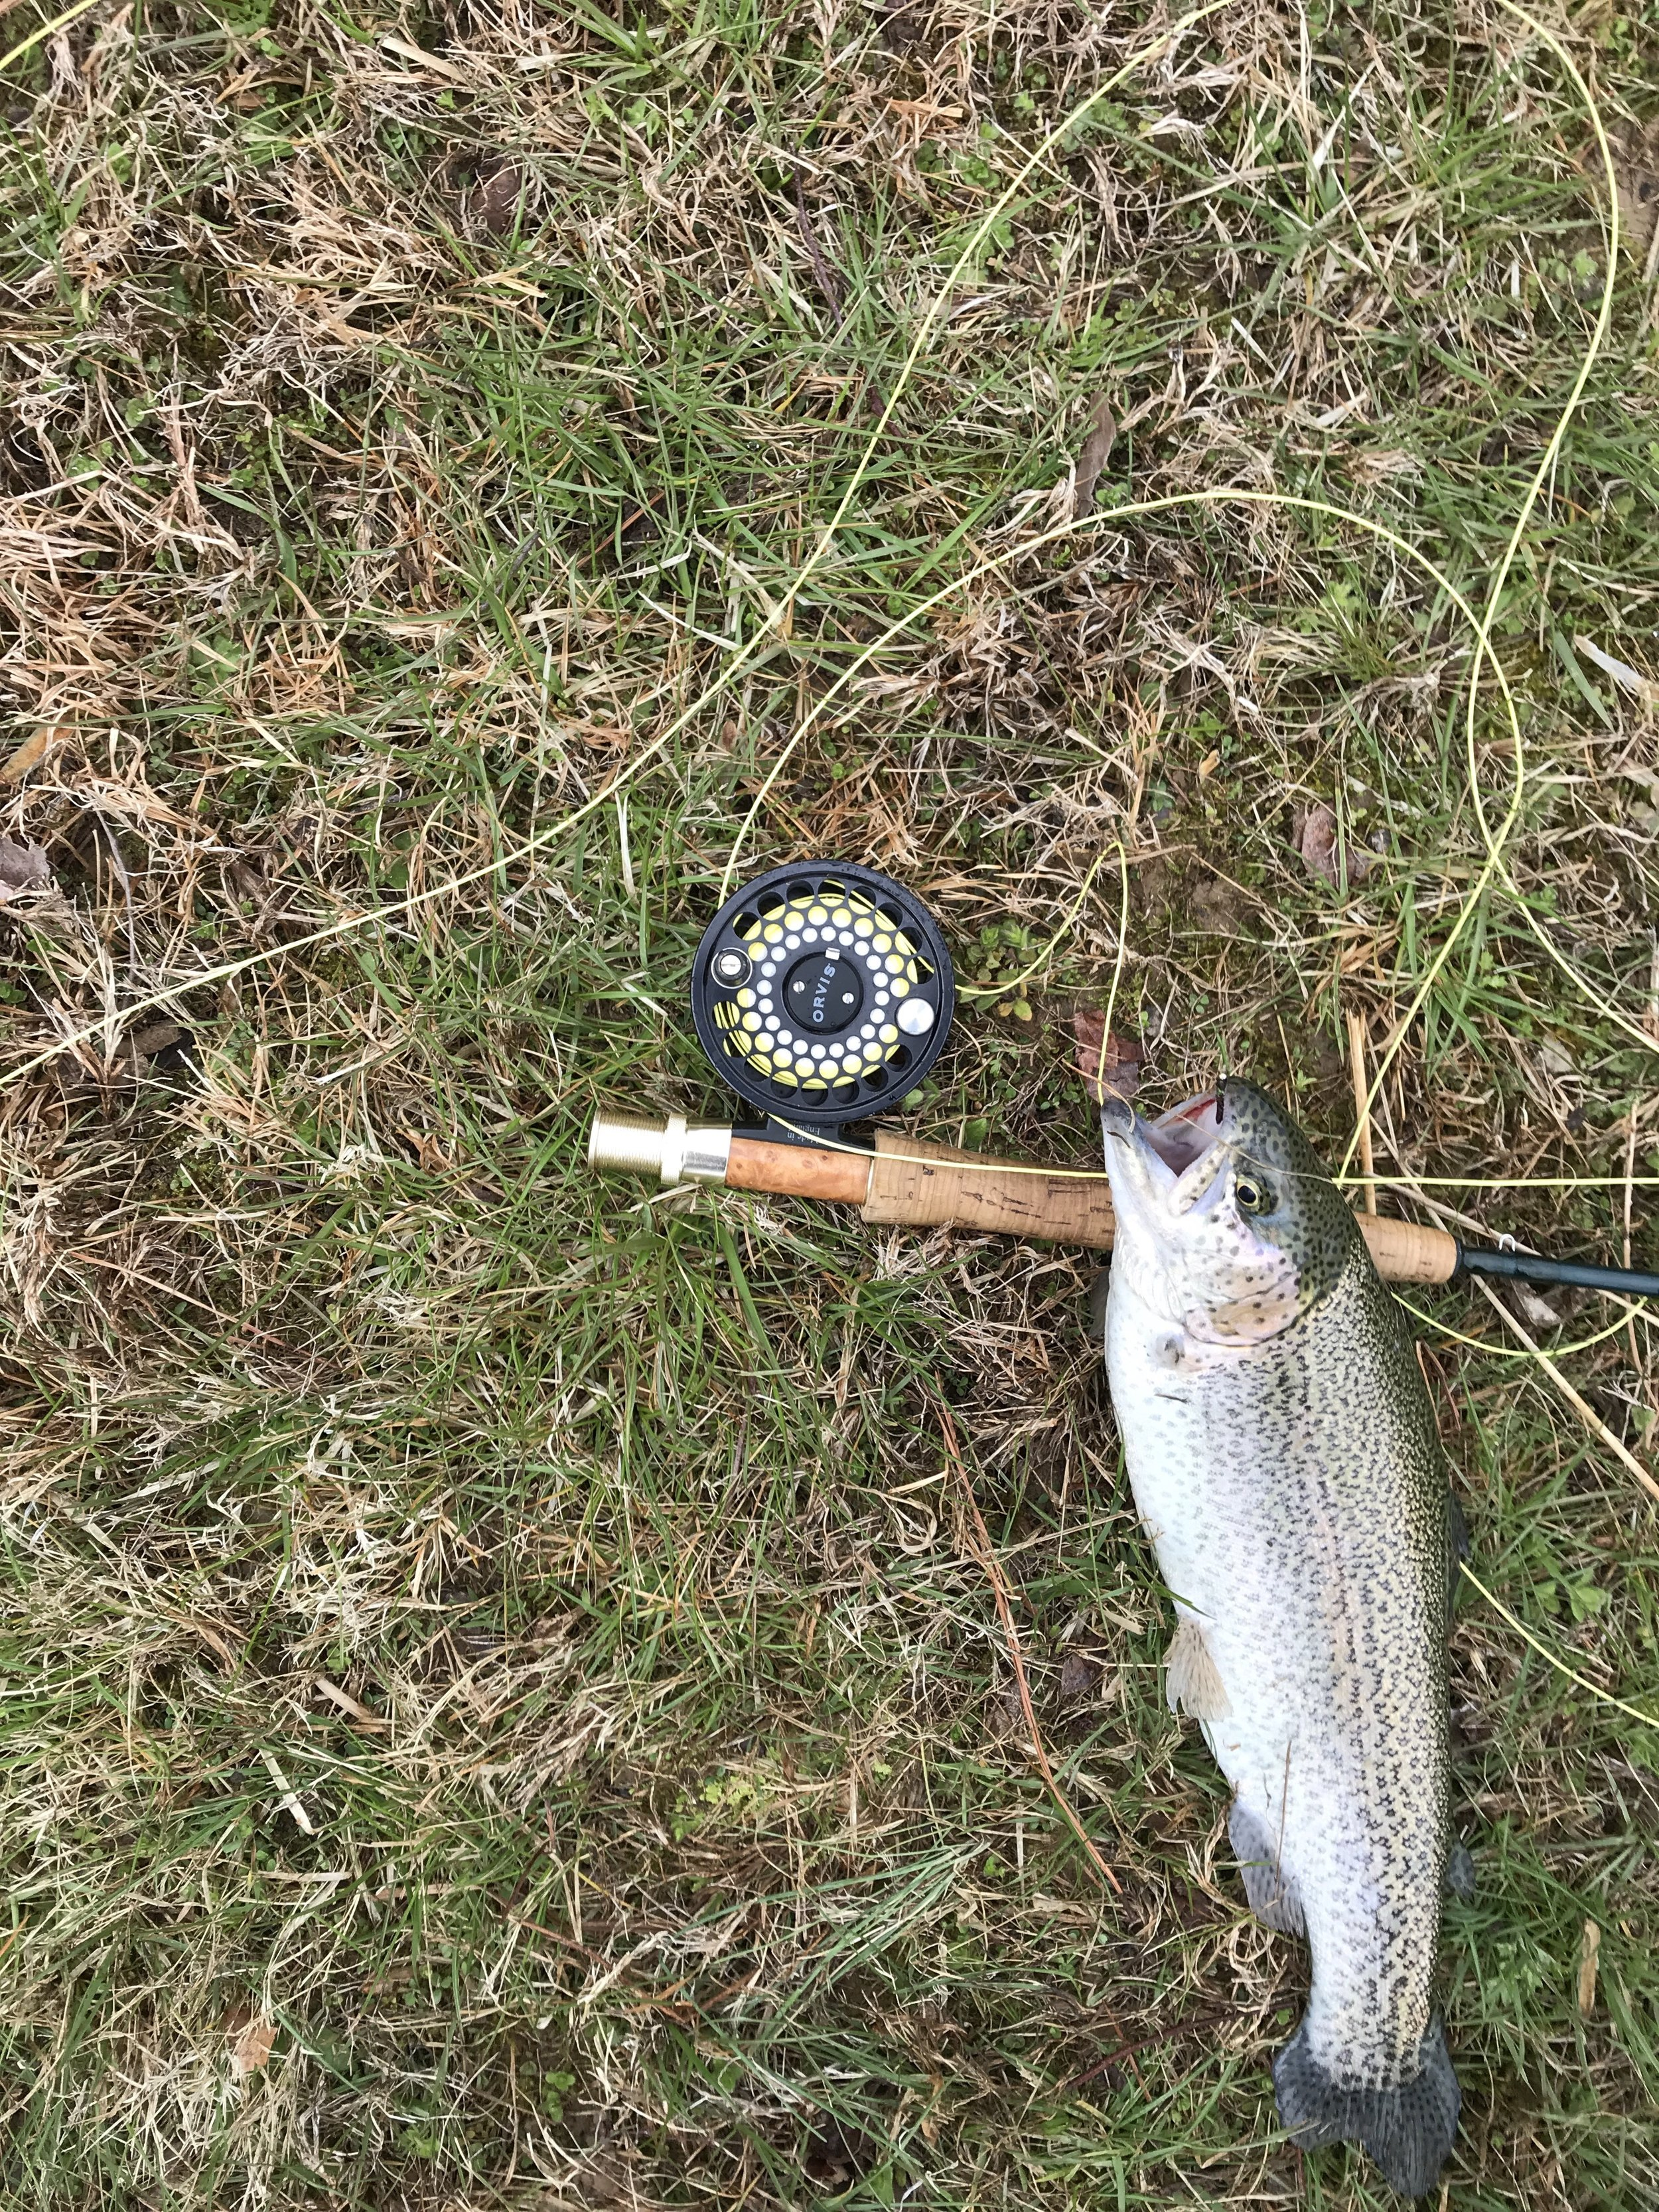 Trout pond update - At the club meeting on Saturday it was noted that the trout were not paying much attention to those coming to fish. Did that change in two days? Maybe. Andy Burdersky sent in the photo here and reported that he caught four trout on Monday, all on #16 nymphs.